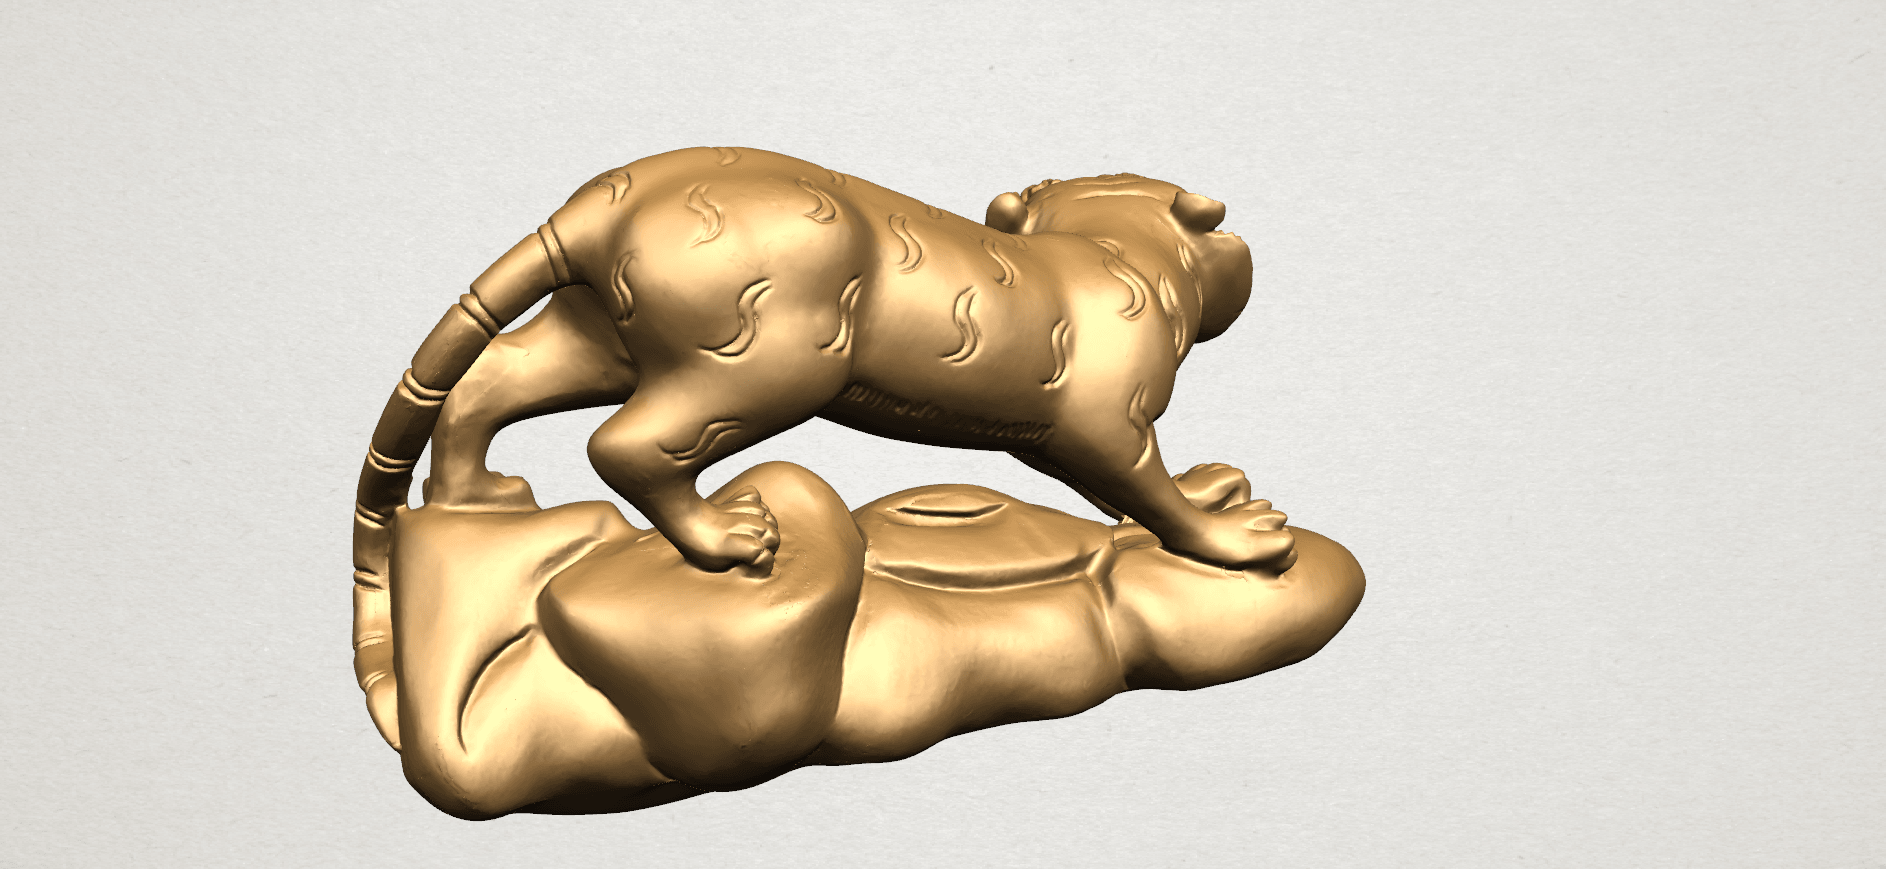 Chinese Horoscope03-A03.png Download free STL file Chinese Horoscope 03 Tiger • 3D printer template, GeorgesNikkei